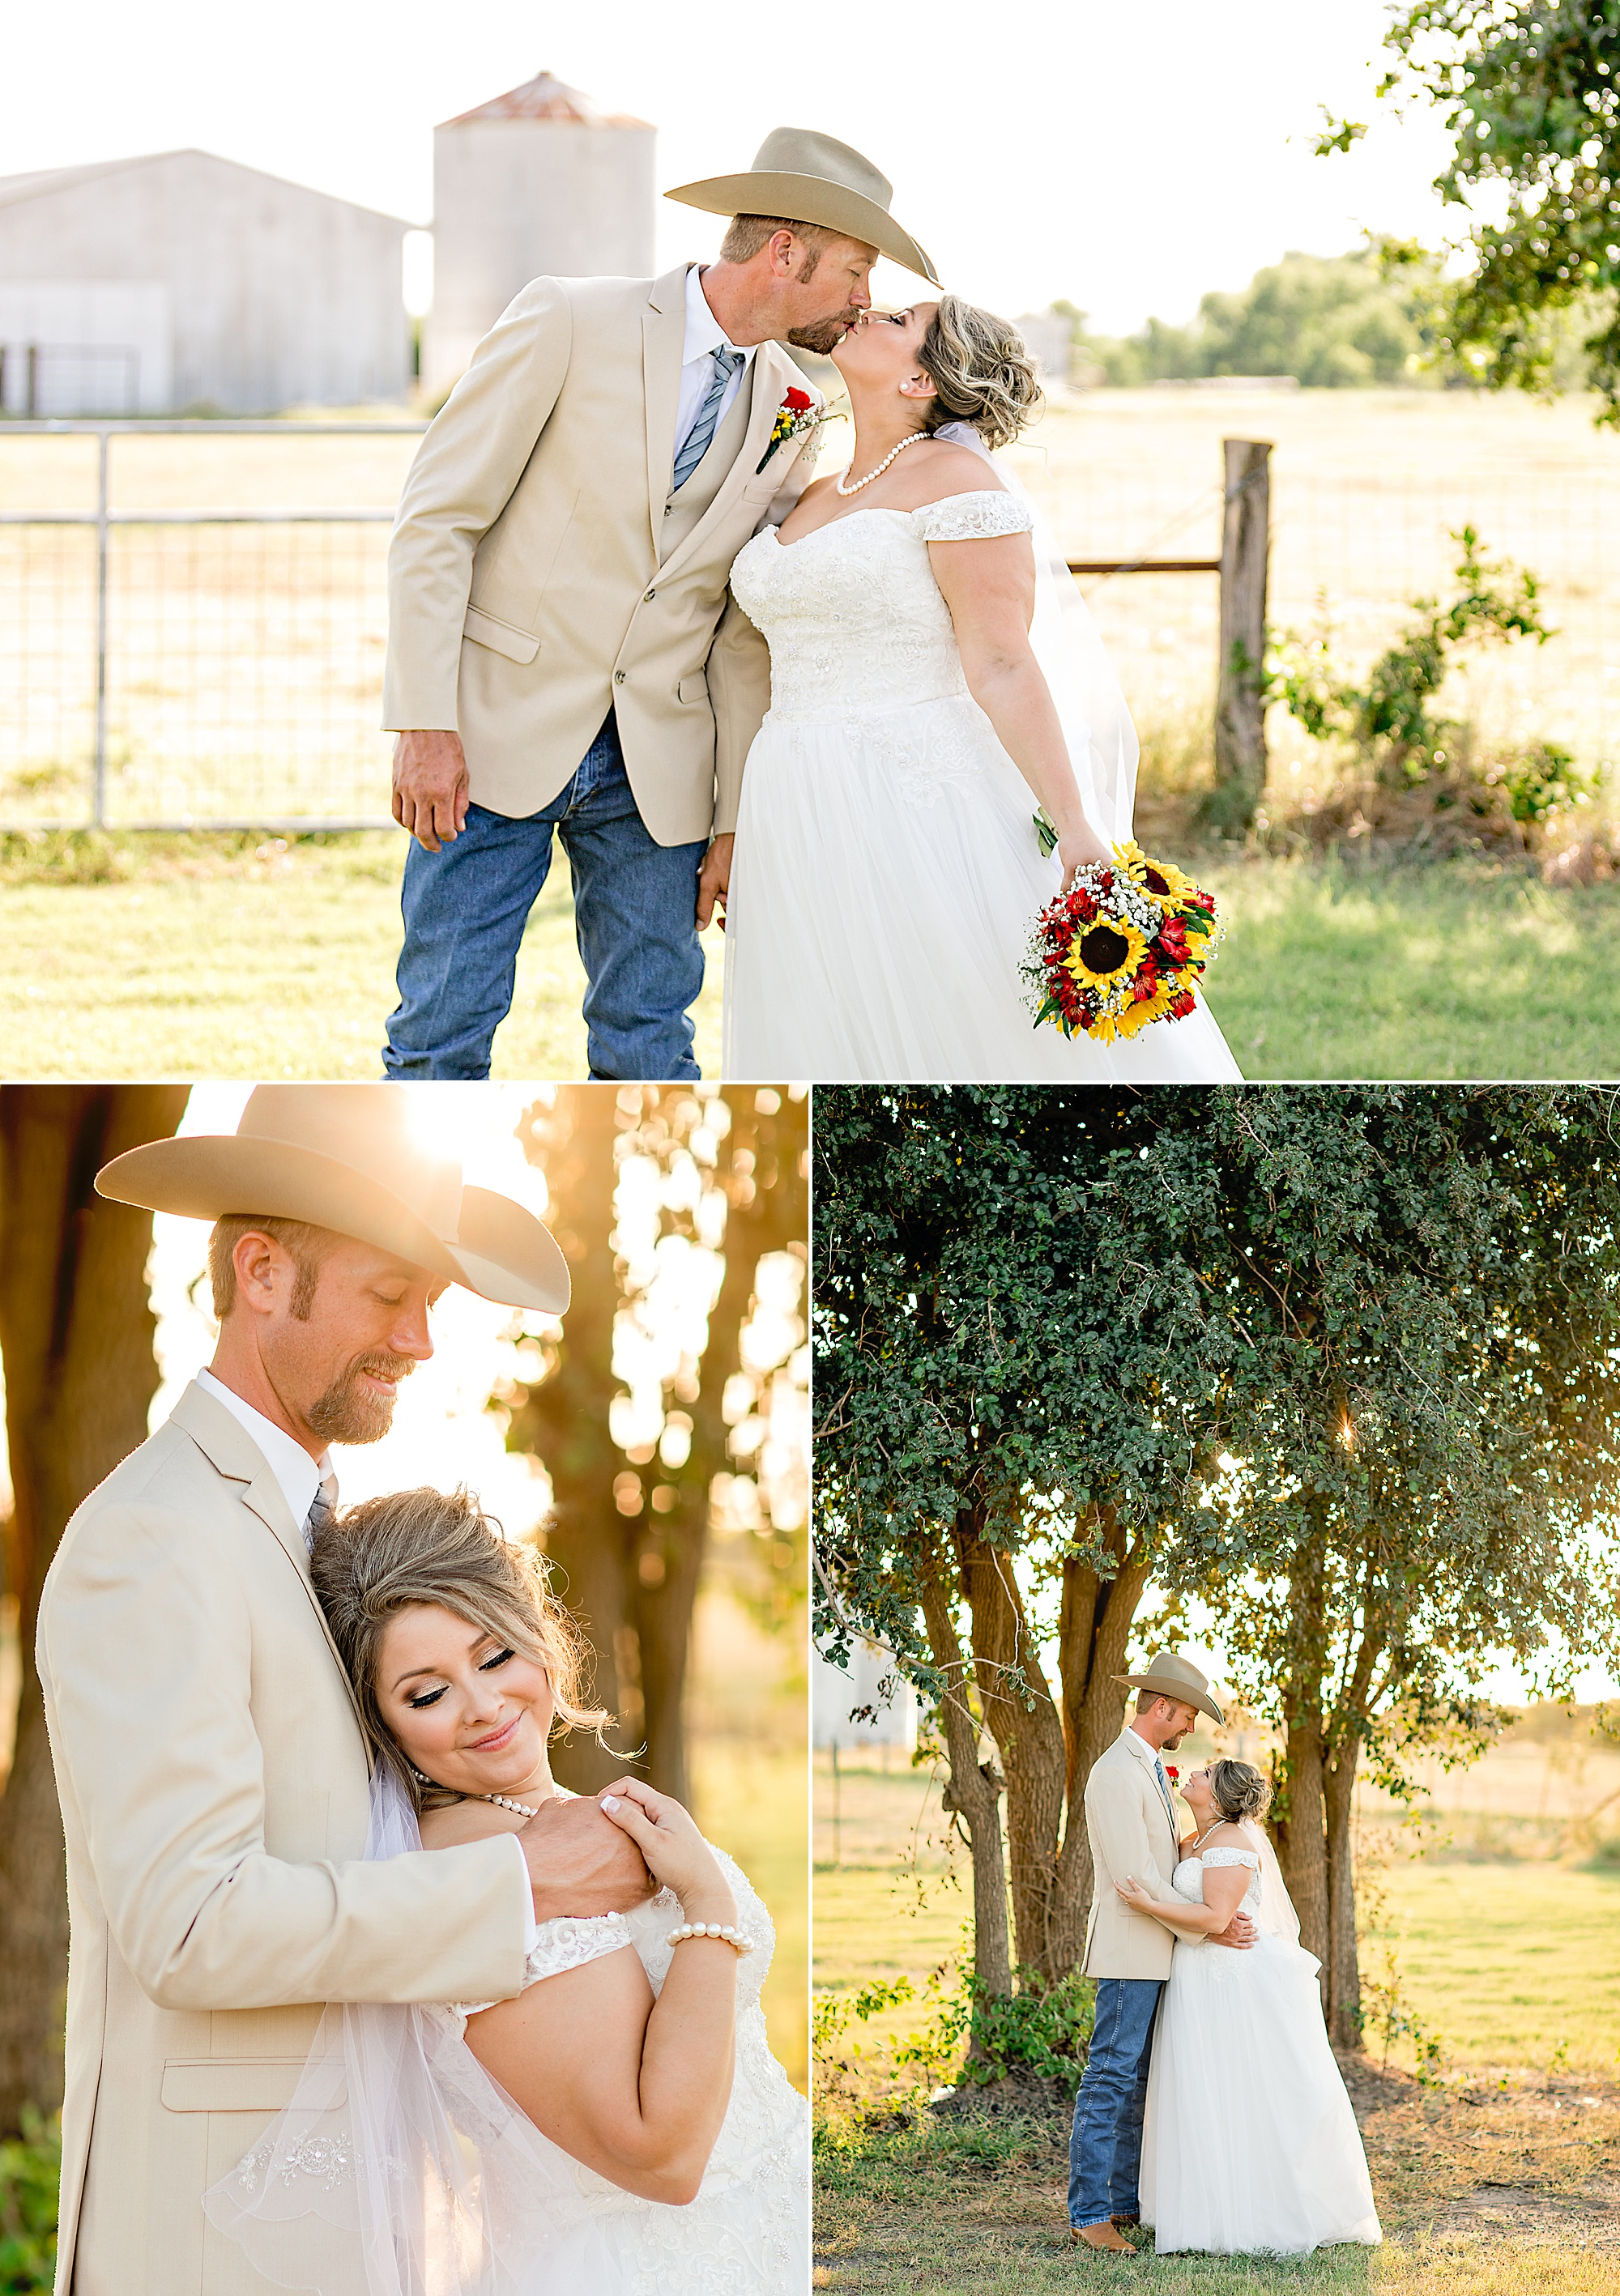 Wedding-Photographer-Rustic-Sunflower-theme-Texas-Carly-Barton-Photography_0103.jpg